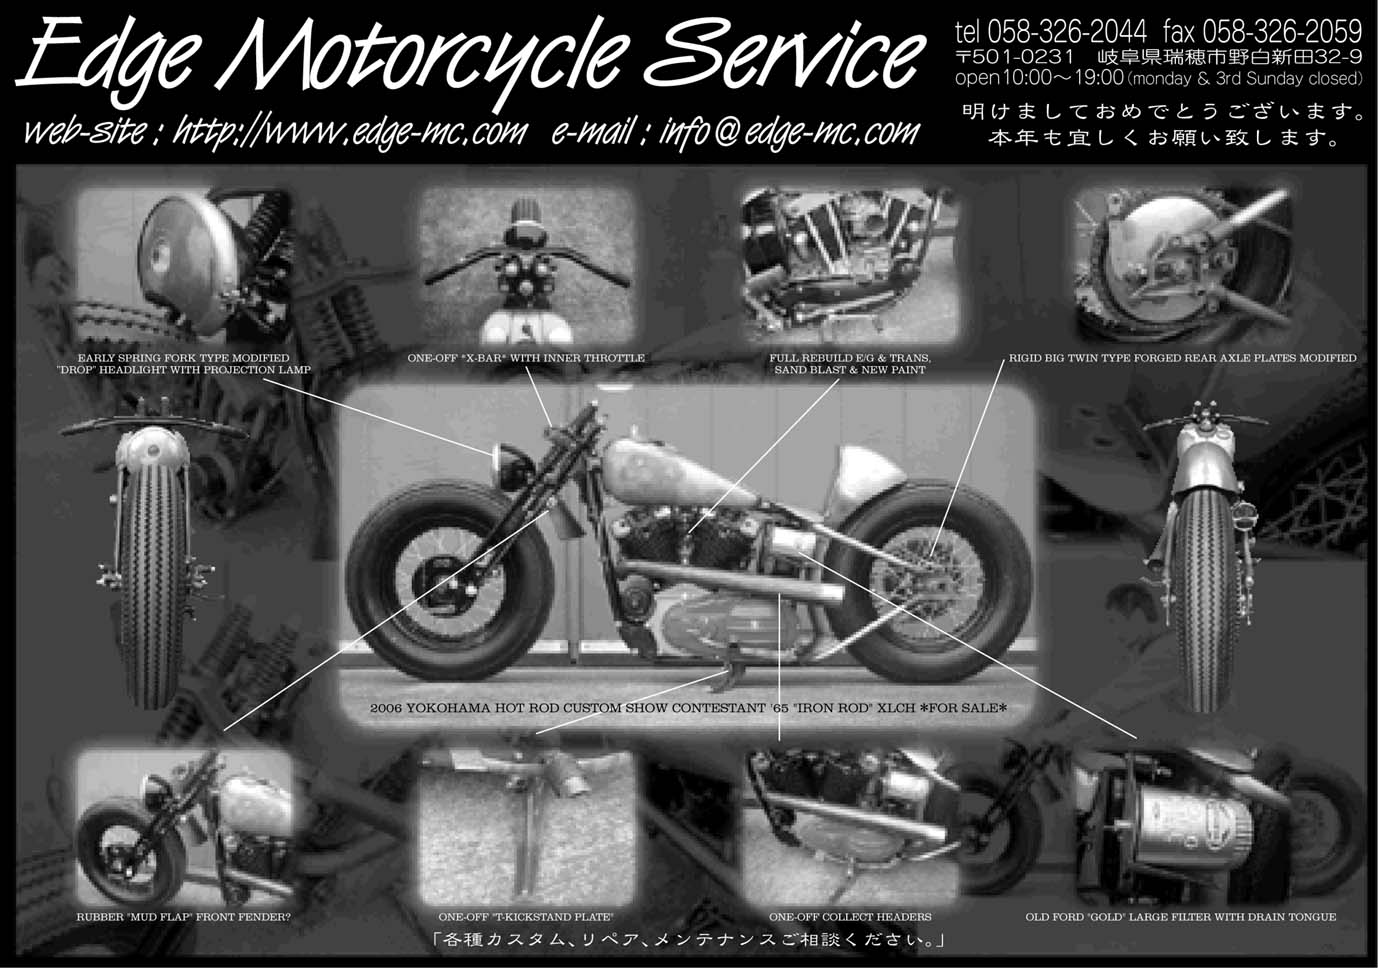 Edge Motorcycle Service Owner\'s BLOG スタート!!_c0133351_16145298.jpg